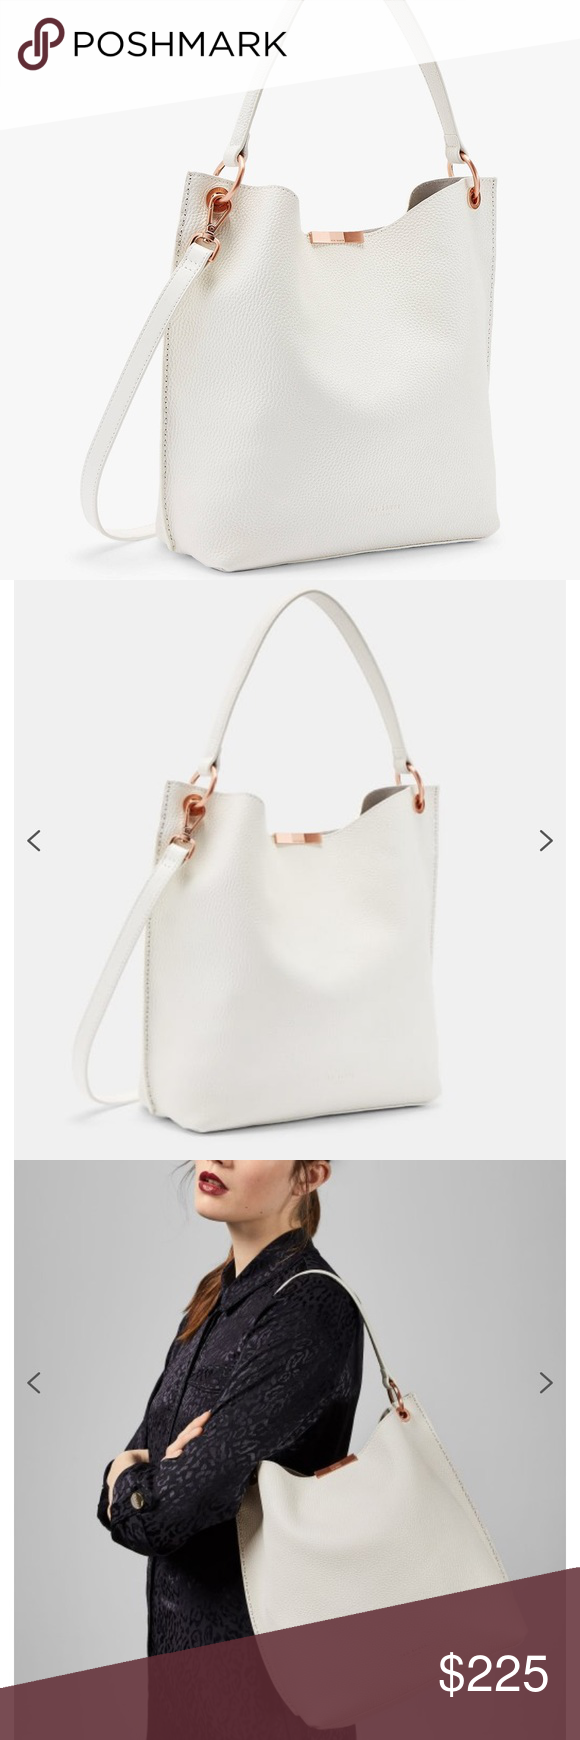 Ted Baker Candiee Soft Grain Leather Hobo Bag Leather Hobo Leather Hobo Bag Hobo Bag